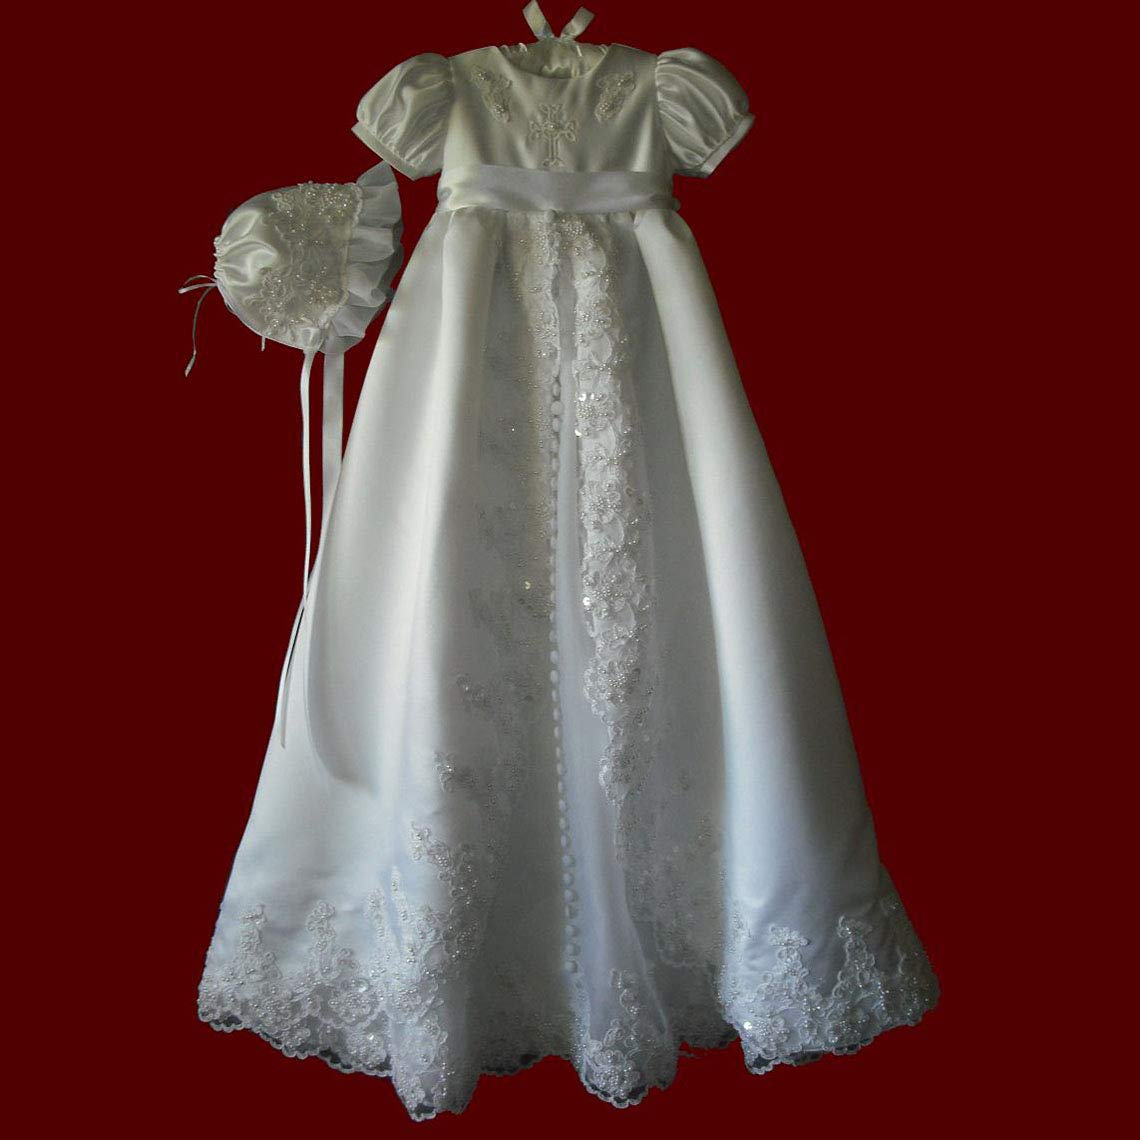 Faithclover Christening Dresses for Baby Girls Long Lace Beaded Baptism Gowns Toddler with Bonnet